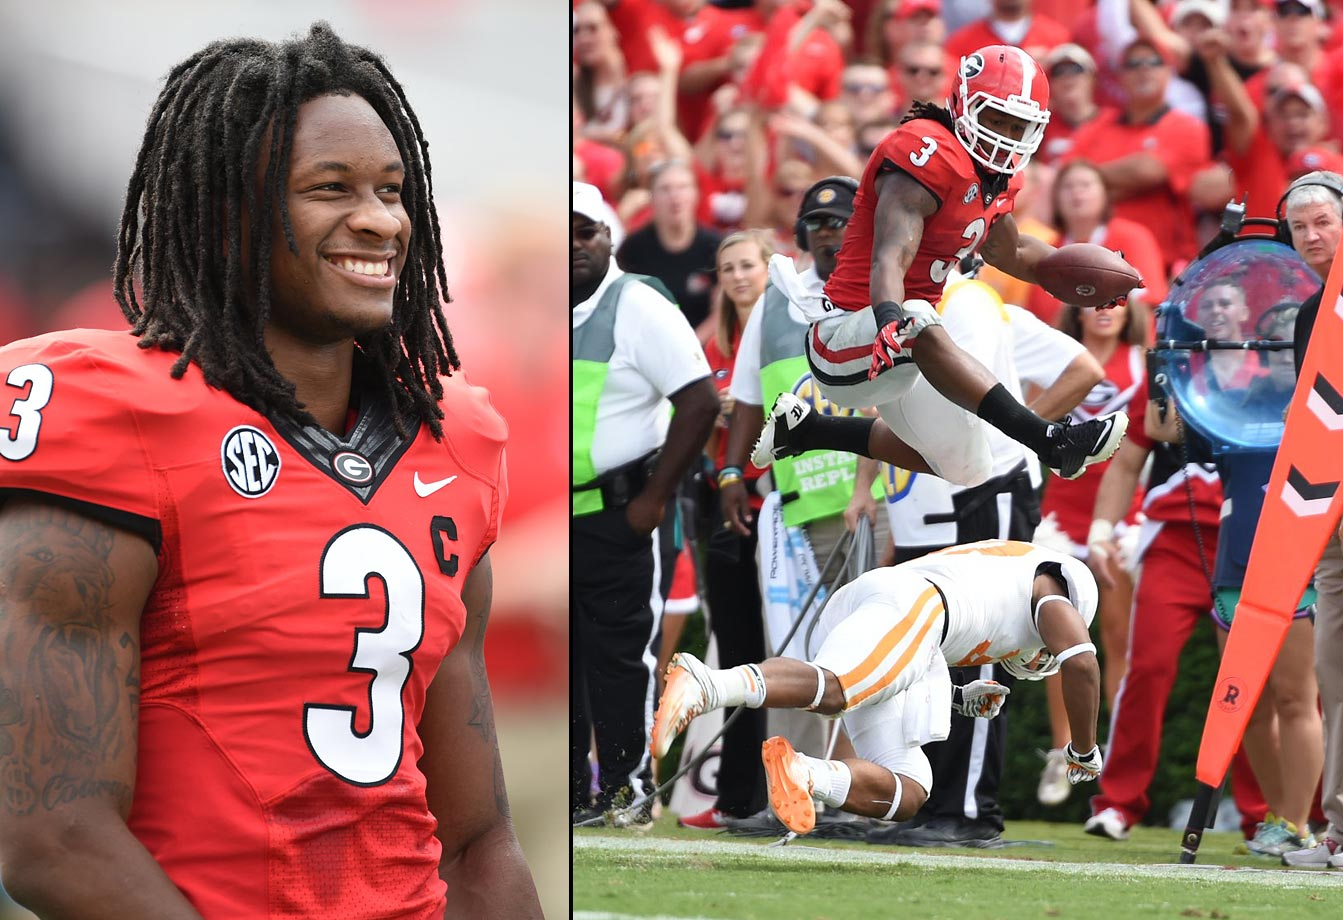 Georgia running back Todd Gurley signed with Jay Z's Roc Nation Sports in Jan. 2015. Gurley, 20, tore the ACL in his left knee in November against Auburn and missed the rest of the season. It was his first game back since serving a four-game suspension for accepting money for autographs. Gurley, who will enter the 2015 NFL draft, rushed for 911 yards and nine touchdowns while also catching 16 passes for 117 yards in six games in 2014.